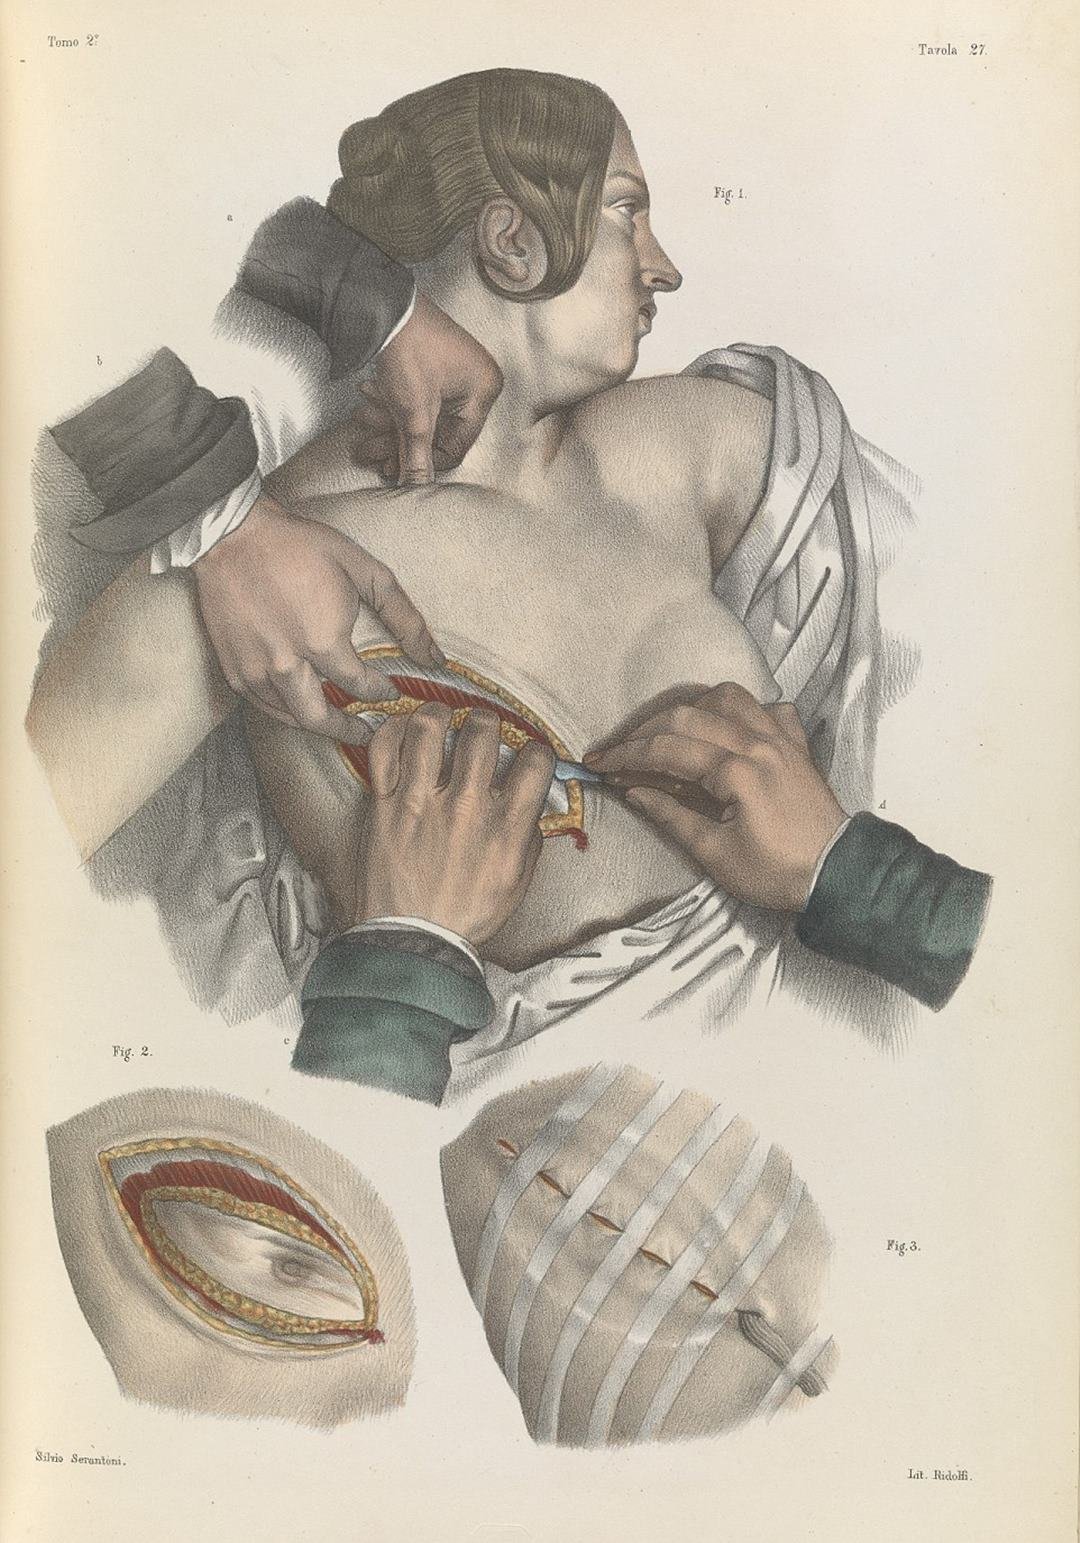 Gruesome images show the barbaric nature of 19th century surgery